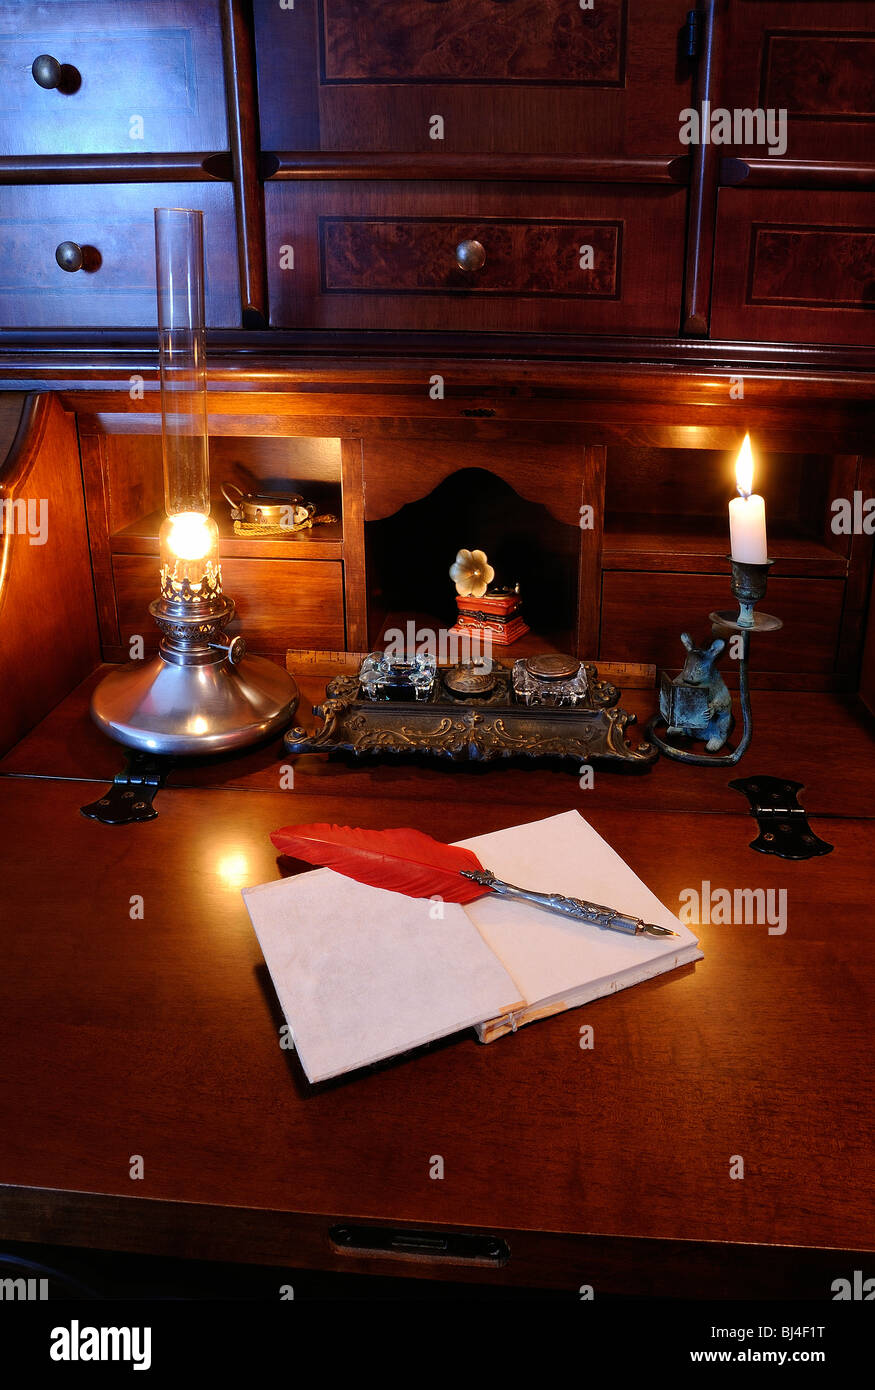 Antique writing desk with red feather quill pen and oil lamp stock antique writing desk with red feather quill pen and oil lamp aloadofball Choice Image